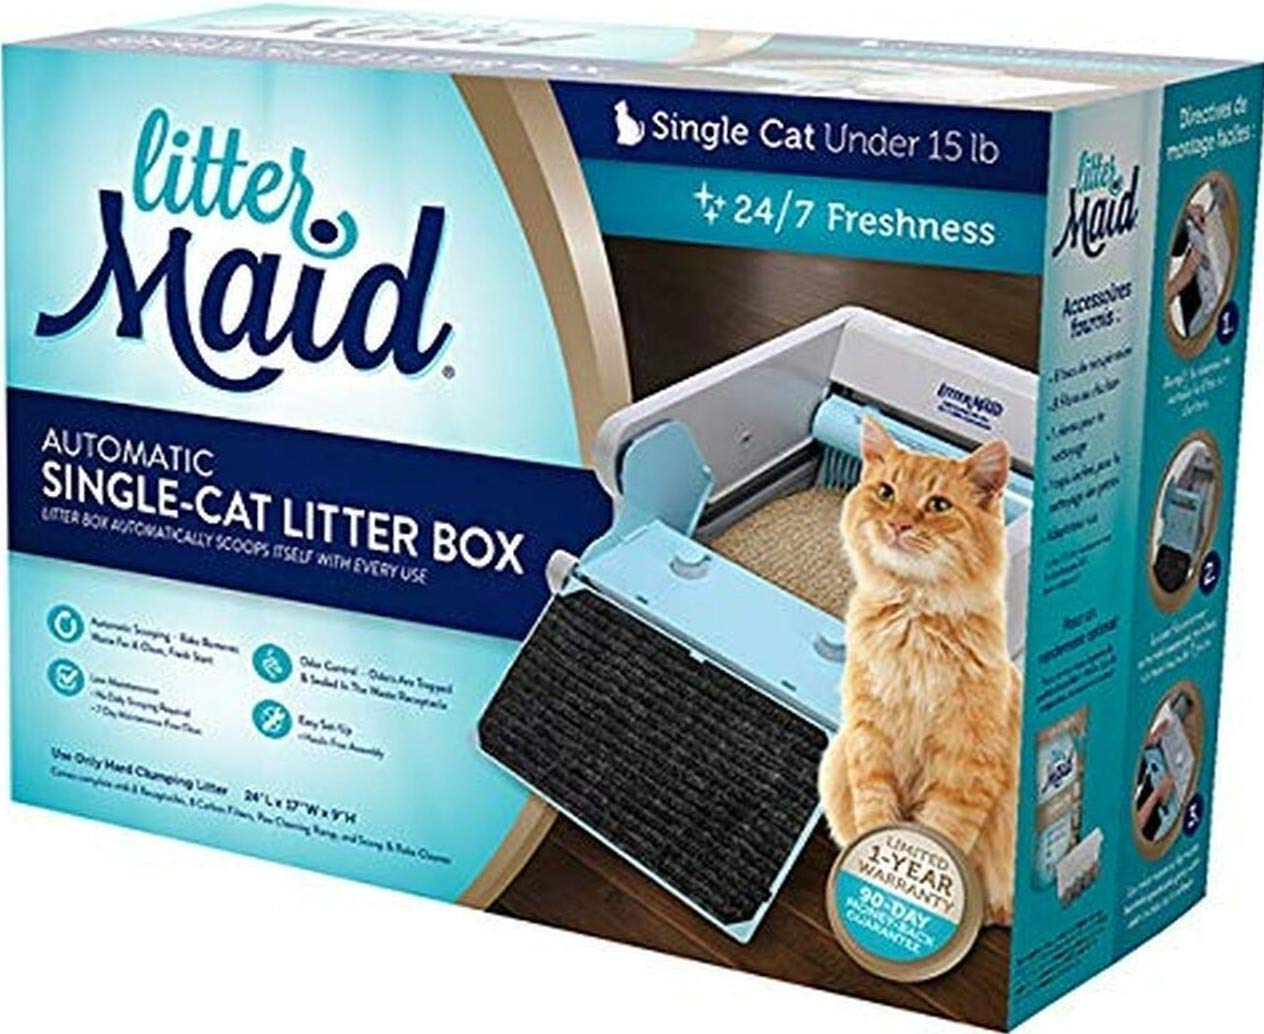 LitterMaid LM680C Single Cat Self-Cleaning Litter Box w/8 receptacles/8 Filters by LitterMaid